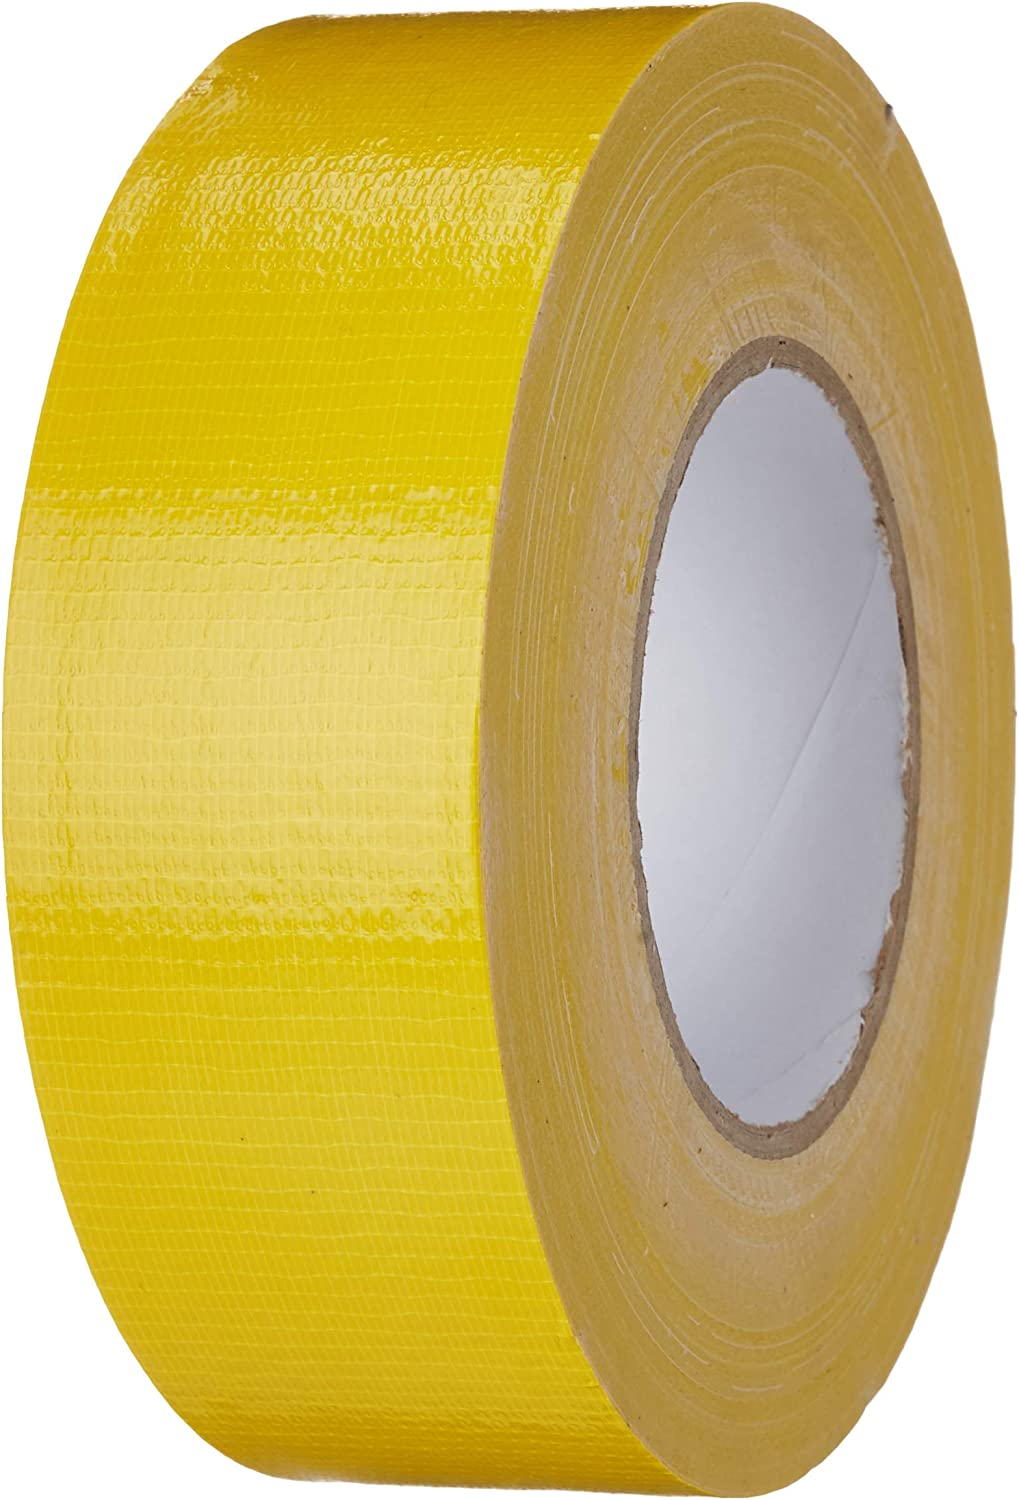 T.R.U. CDT-36 Industrial Grade Duct Tape. Waterproof and UV Resistant. Multiple Colors Available. (Yellow, 2 in.)